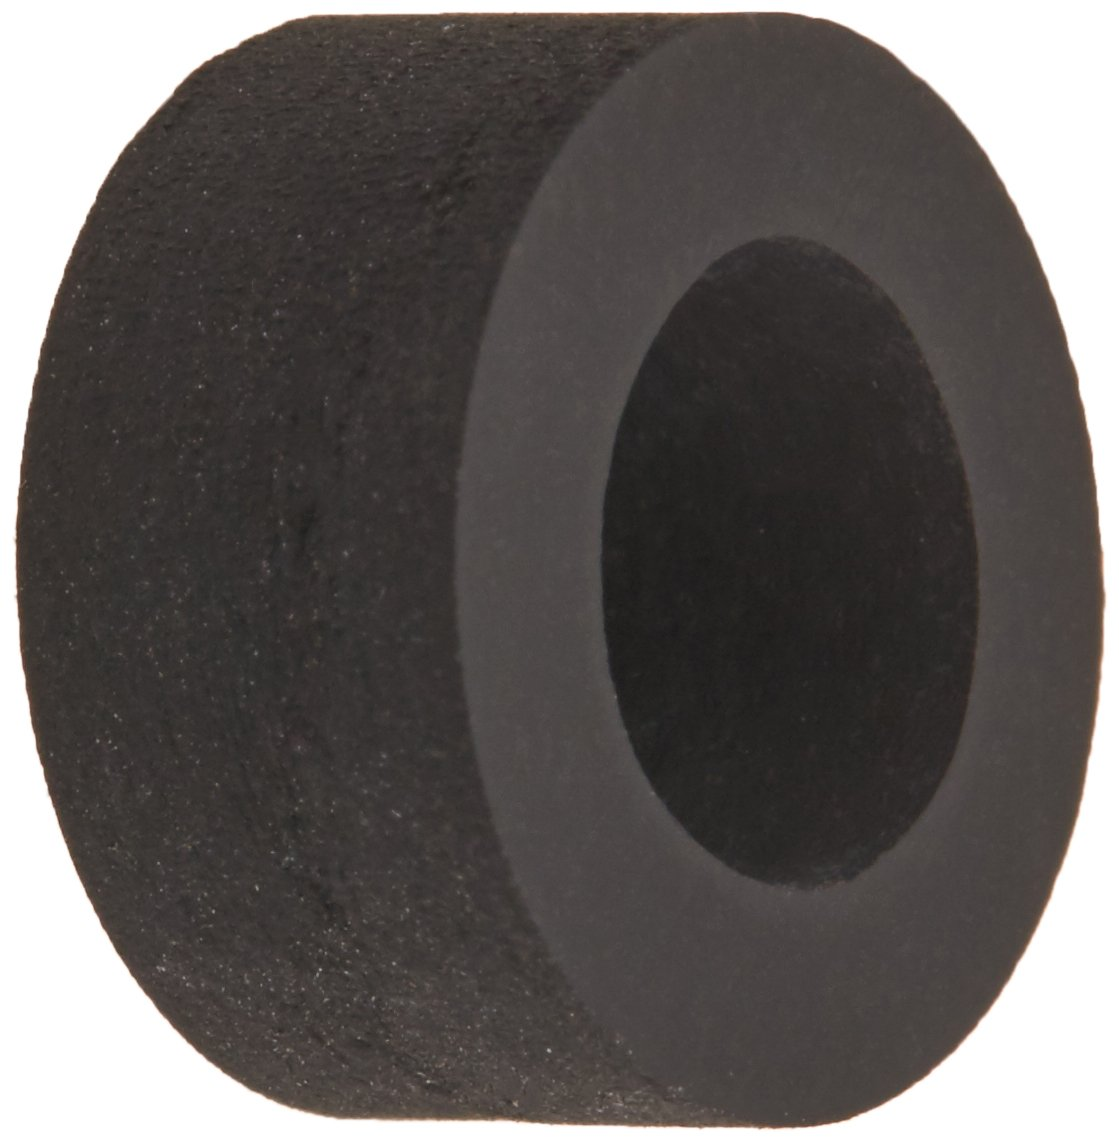 Parker Hannifin 60VLV-5-pk5 Air Brake Sleeve Fitting, Fluorocarbon, 5/16'' Compression Tube (Pack of 5)